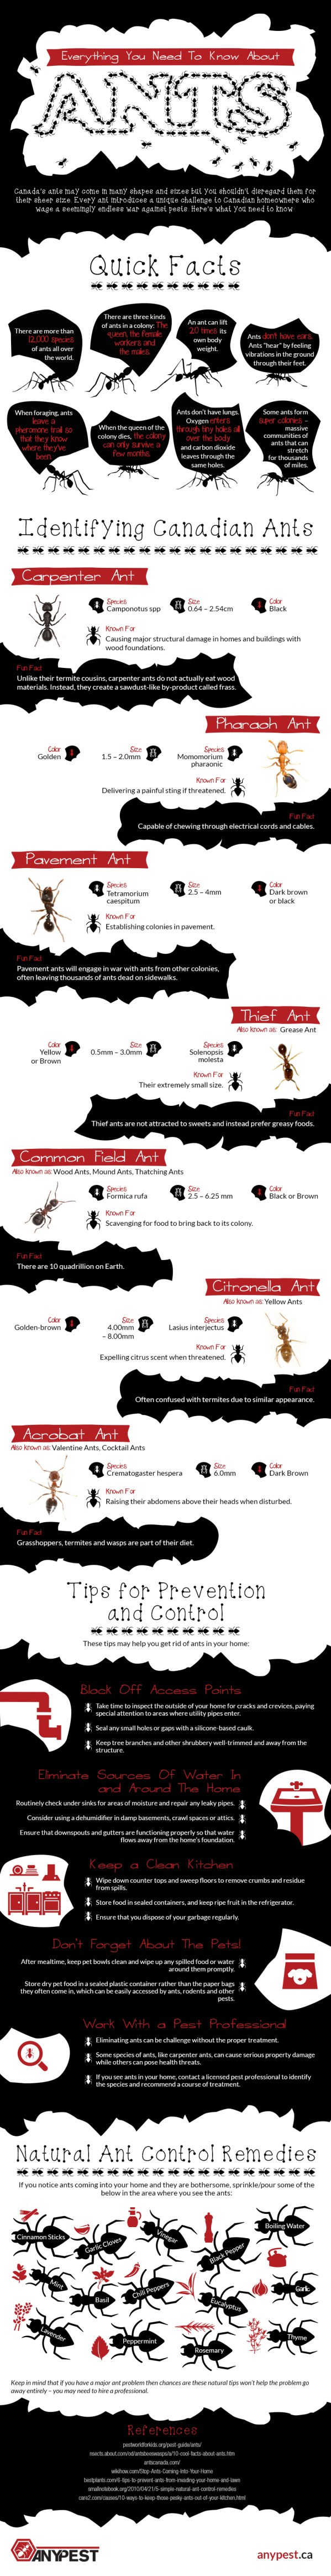 Everything-You-Need-To-Know-About-Ants